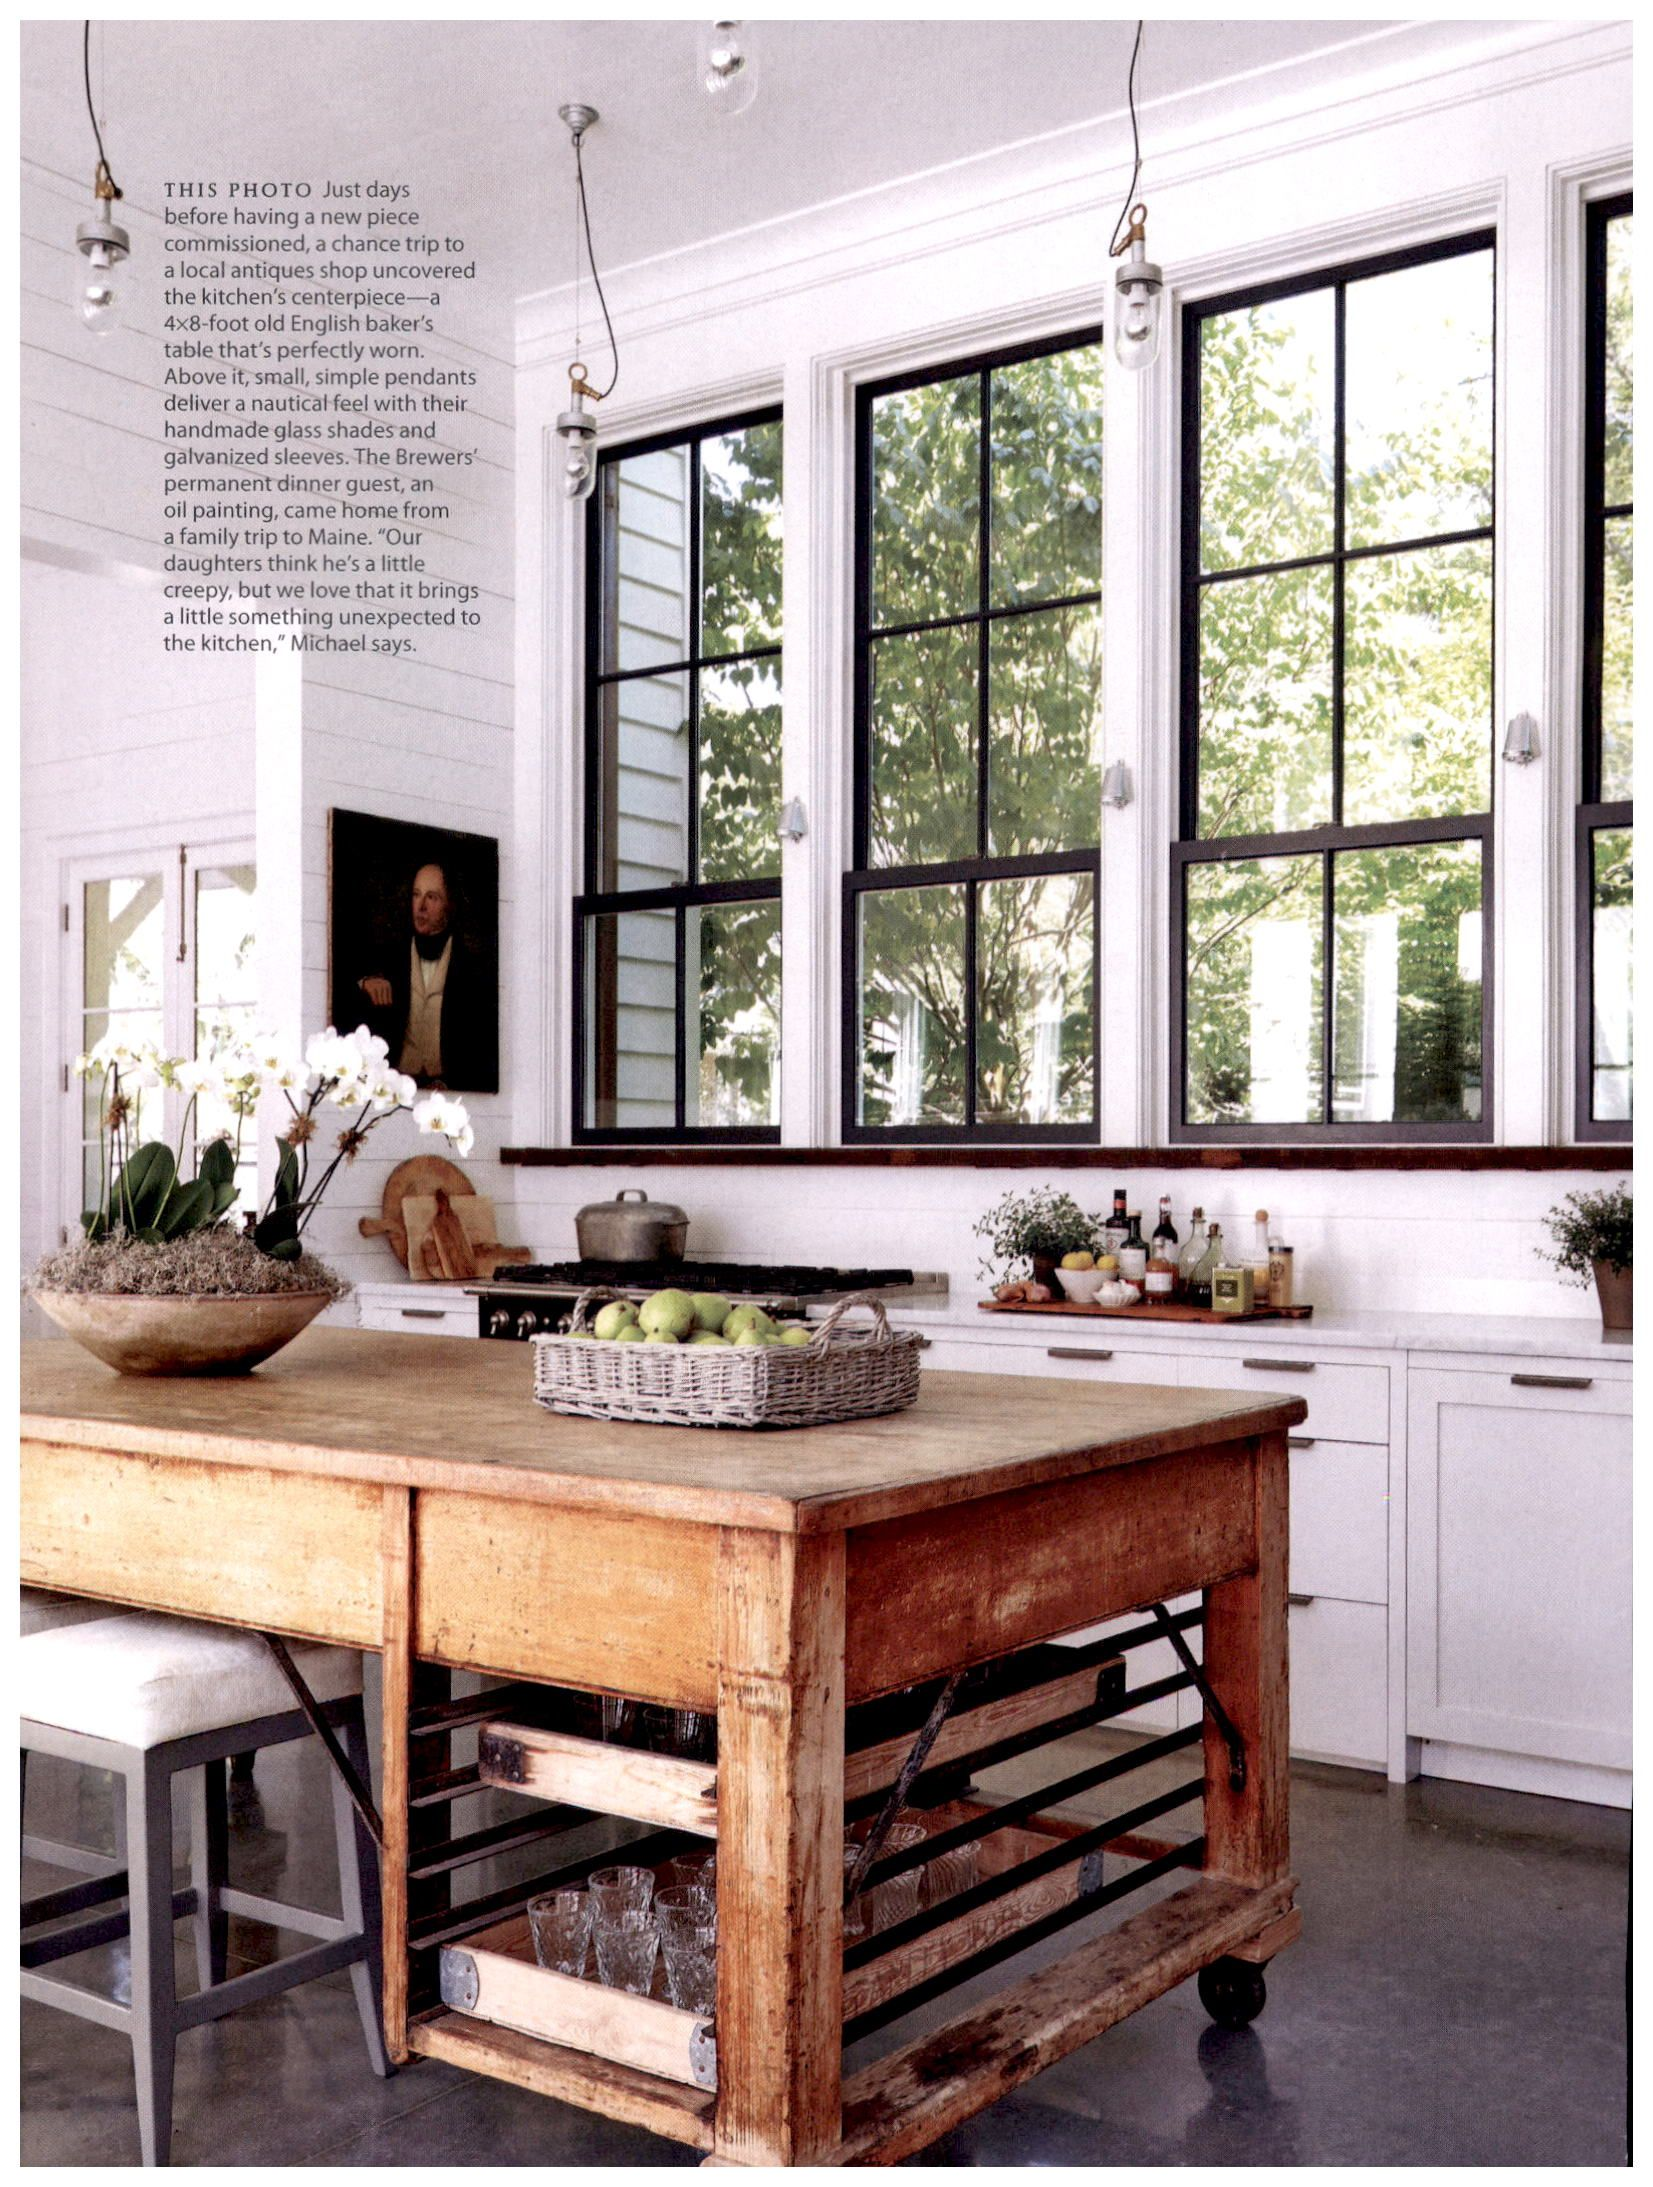 country home winter 2016 4x8 foot old english baker s table that s perfectly worn home on kitchen interior table id=93476